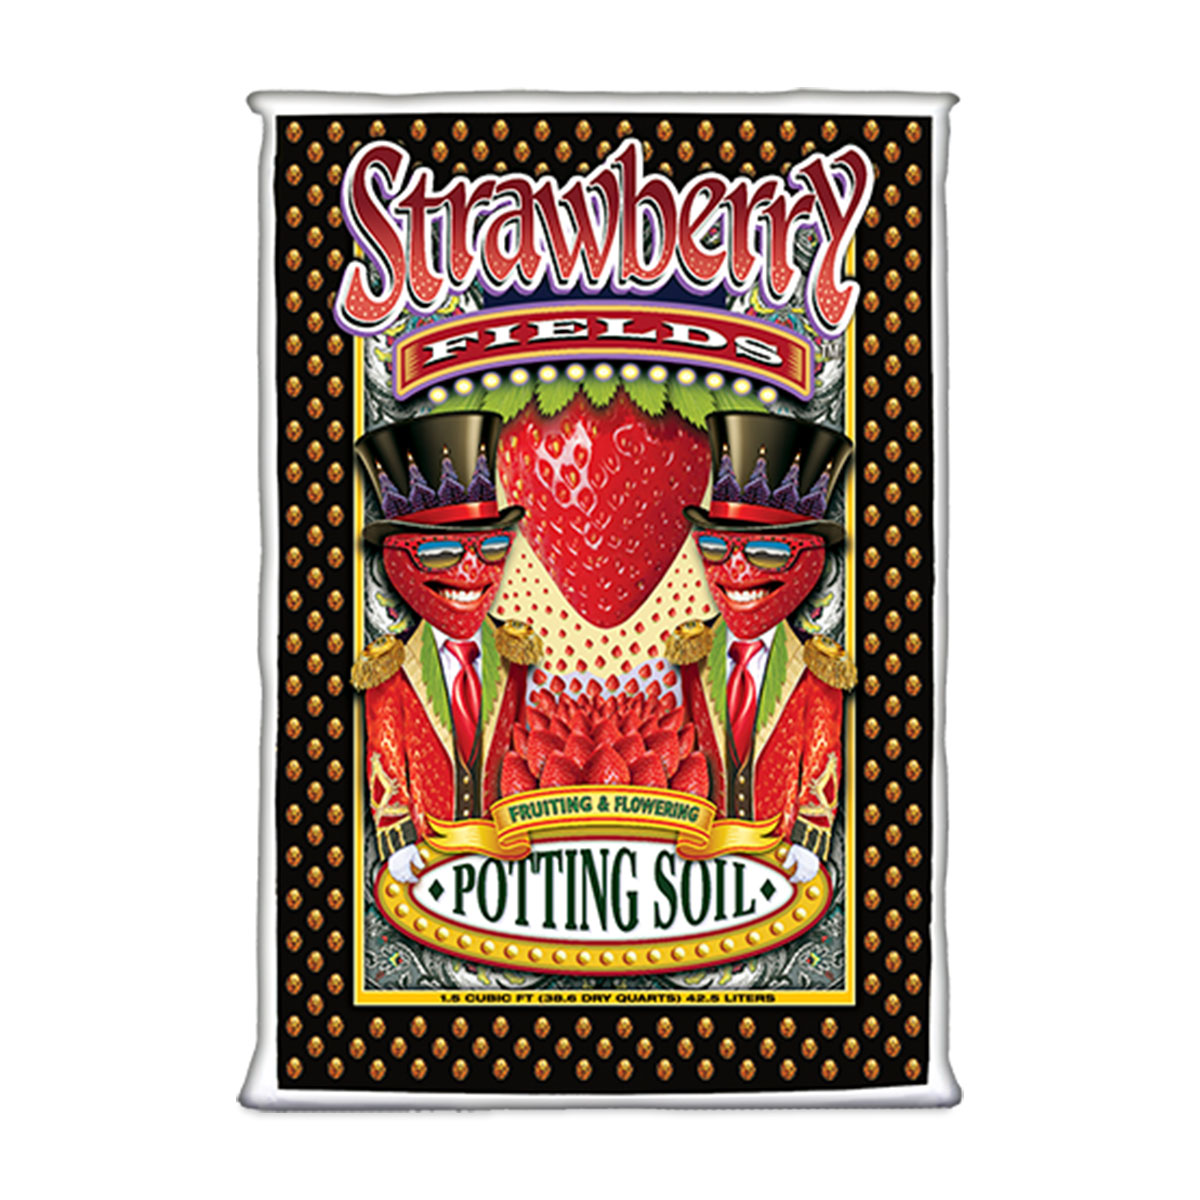 FoxFarm Strawberry Fields® Potting Soil